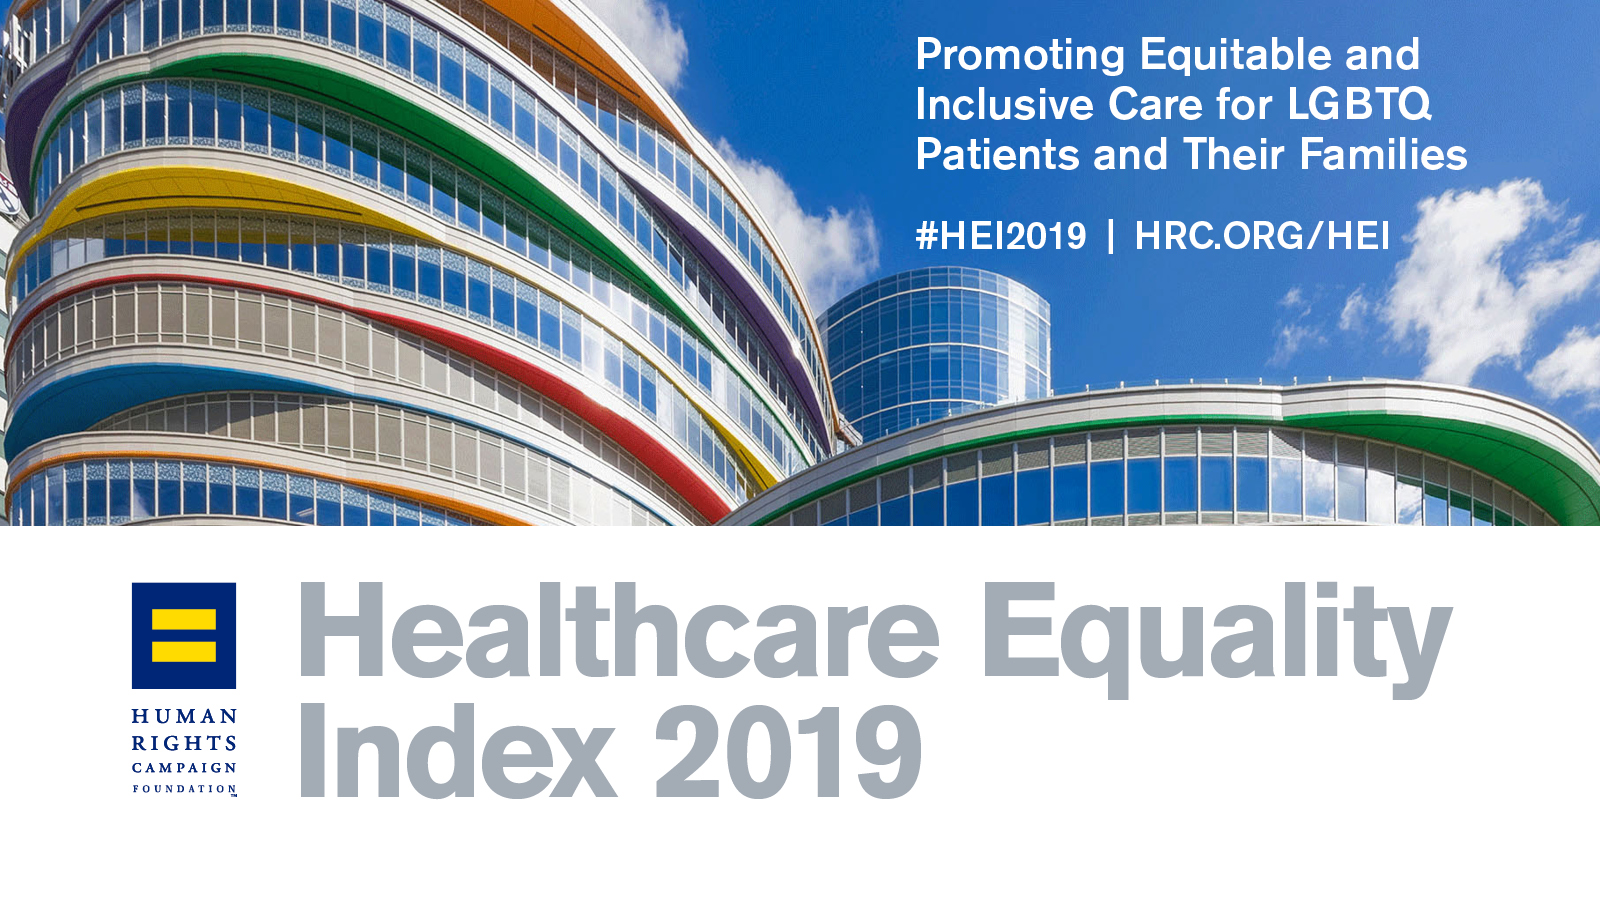 HRC Releases Healthcare Equality Index, Rates Record 680 Health Care Facilities on LGBTQ Inclusion